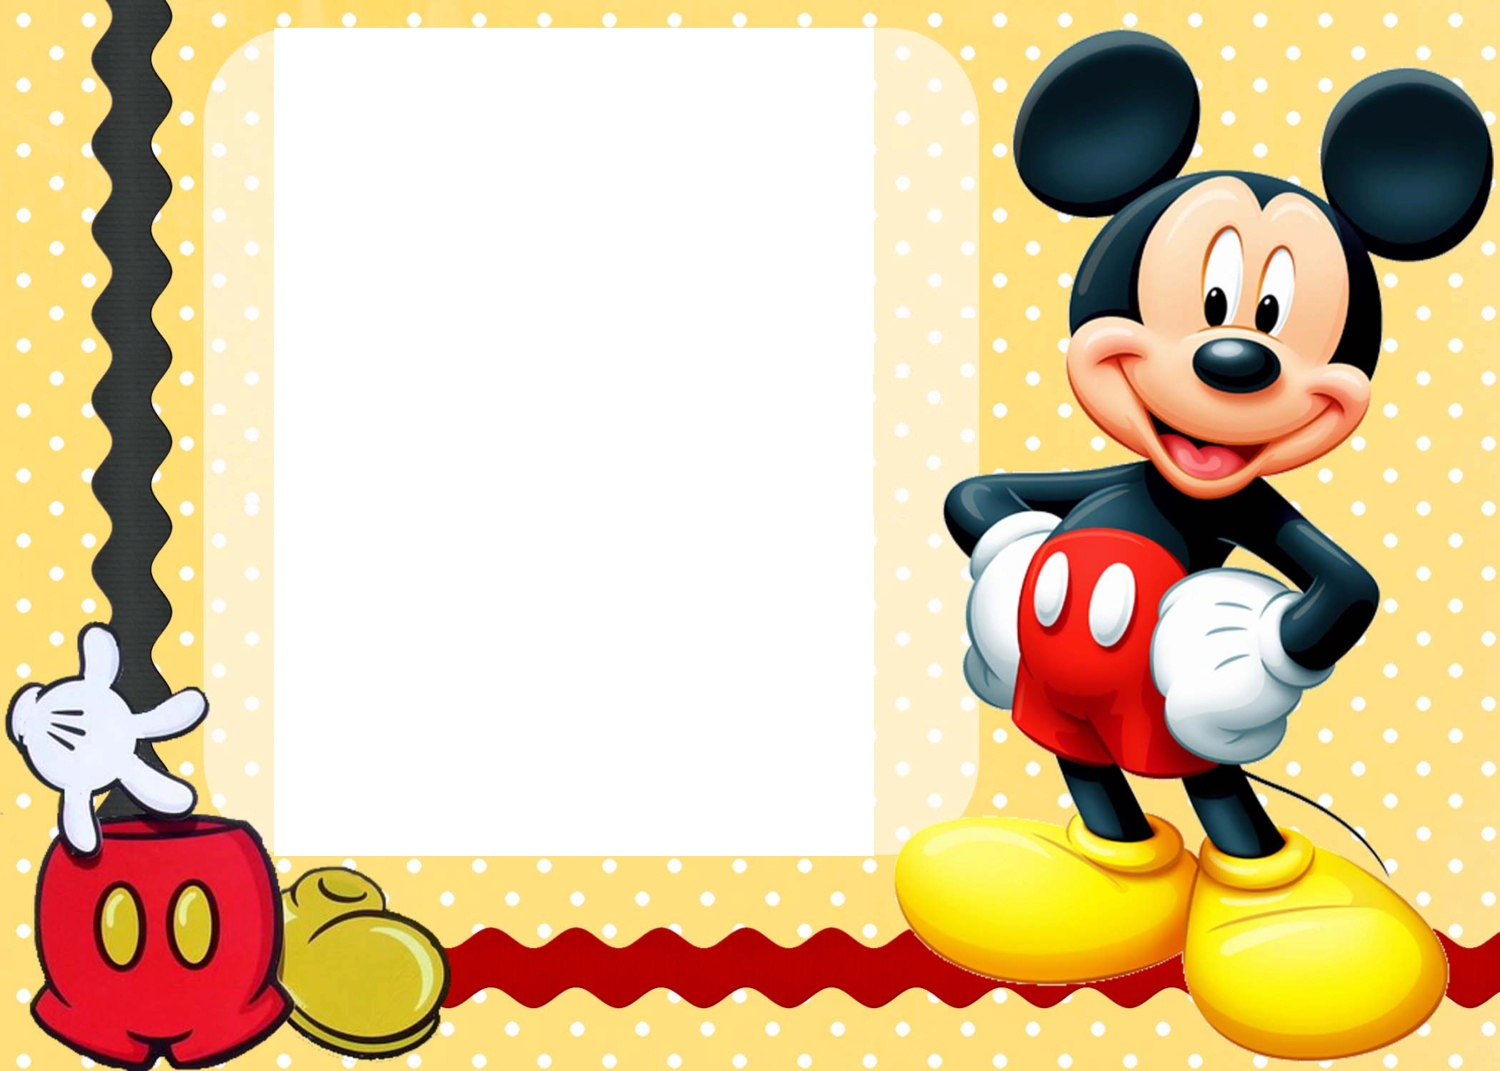 birthday invitation mickey mouse theme ; Mickey-Mouse-Birthday-Invitations-which-can-be-used-to-make-your-own-Birthday-invitation-design-8